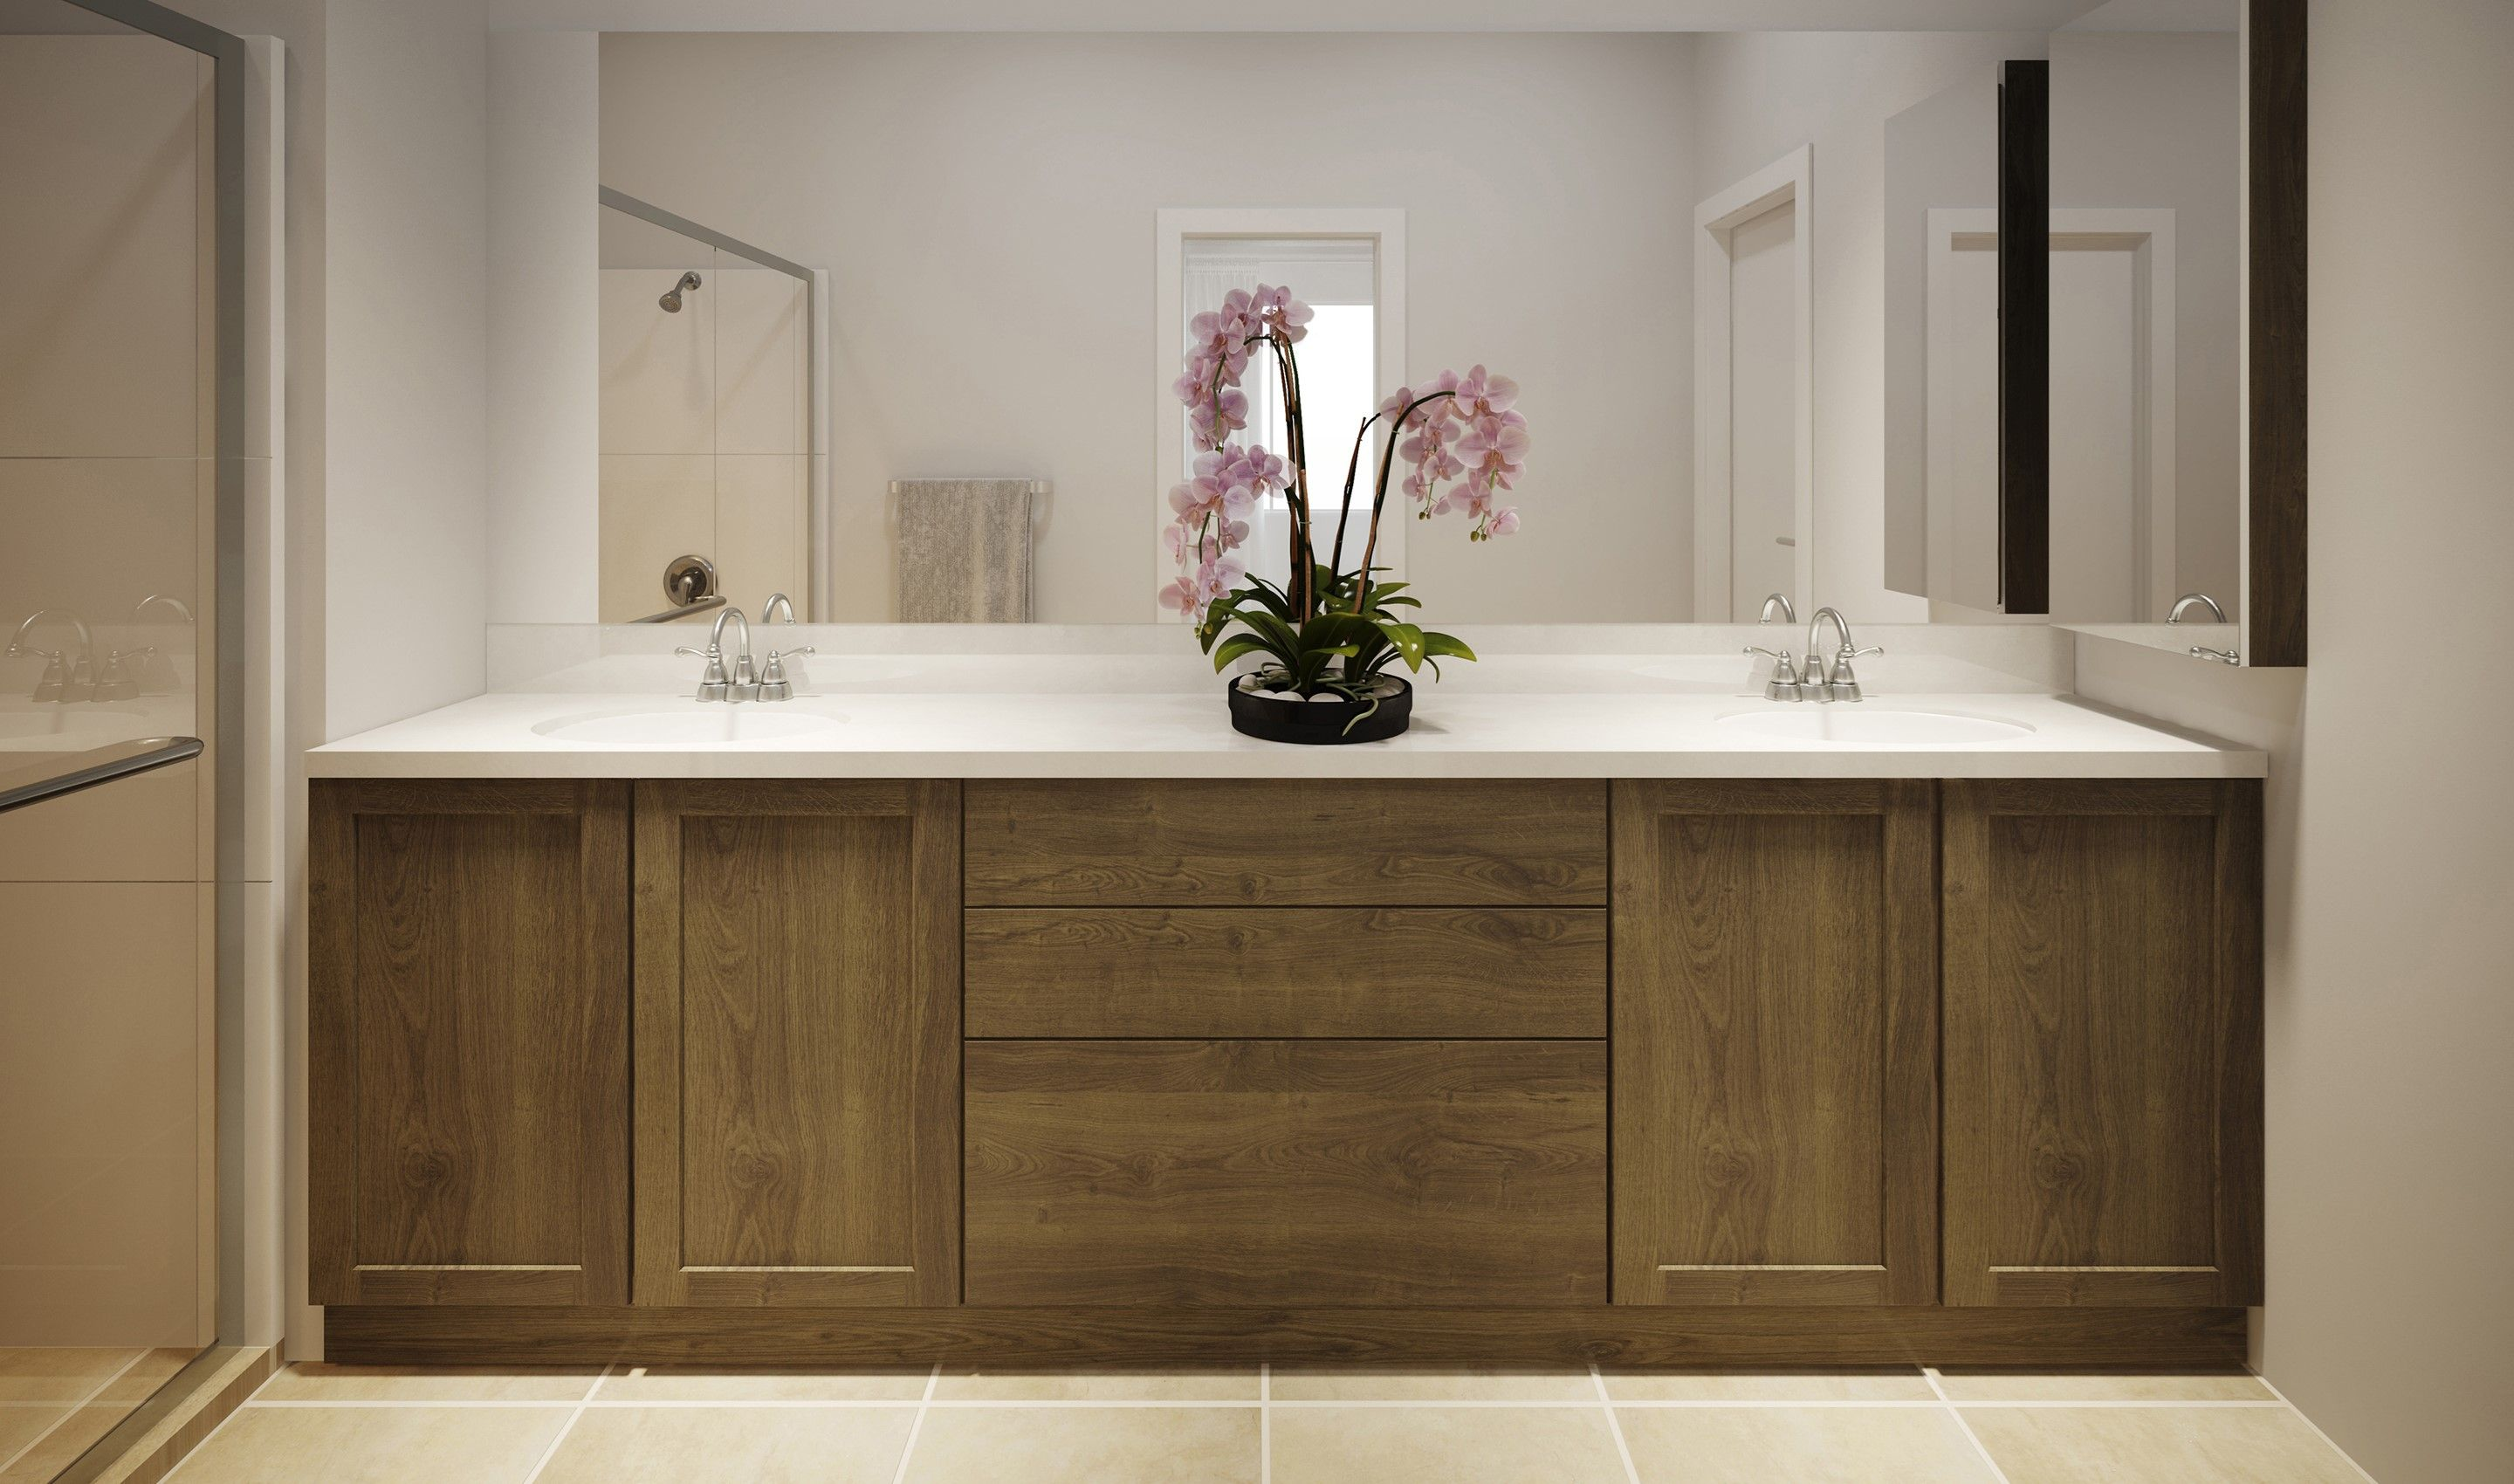 Bathroom featured in the Prelude By K. Hovnanian® Homes in Phoenix-Mesa, AZ